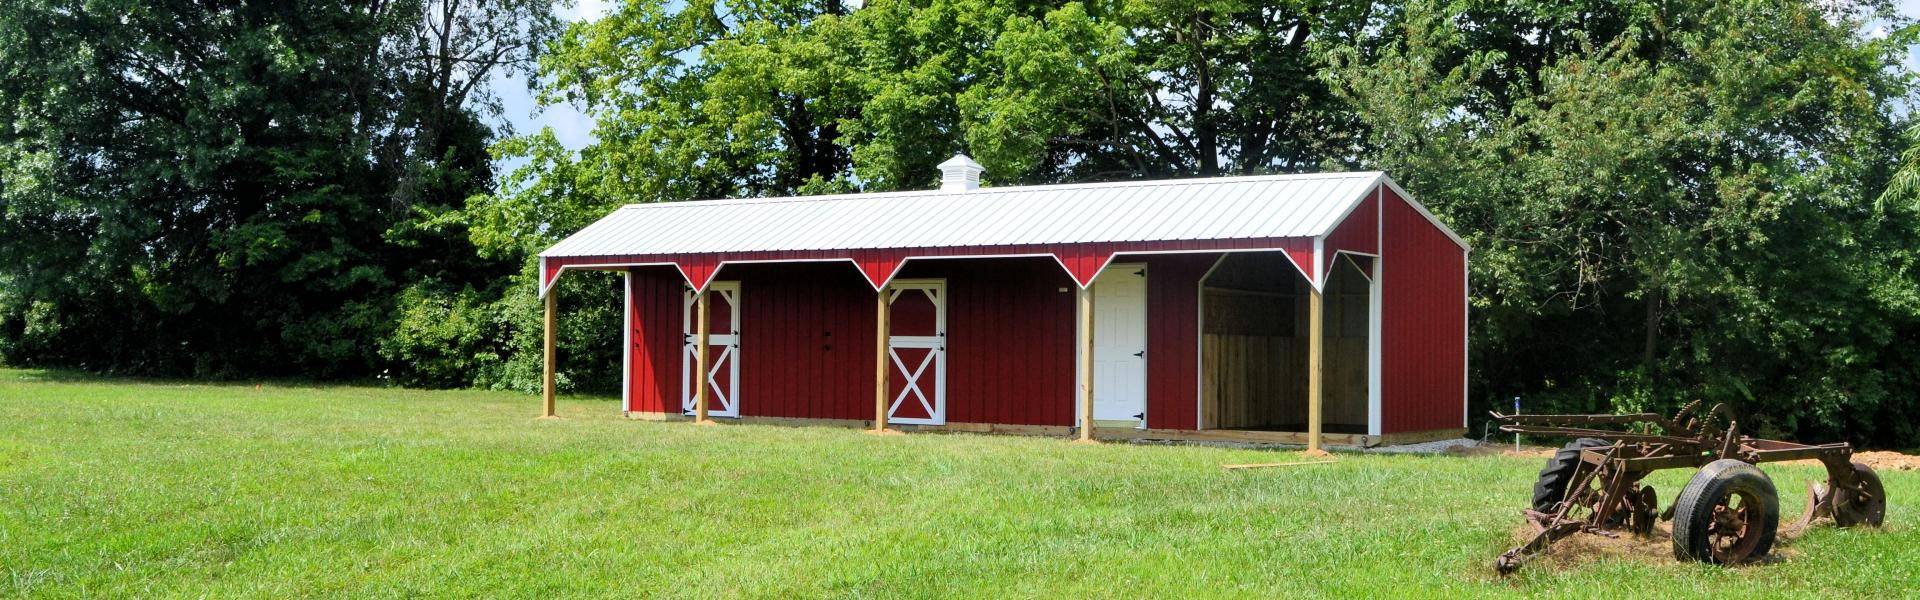 Horse barns protect your horses